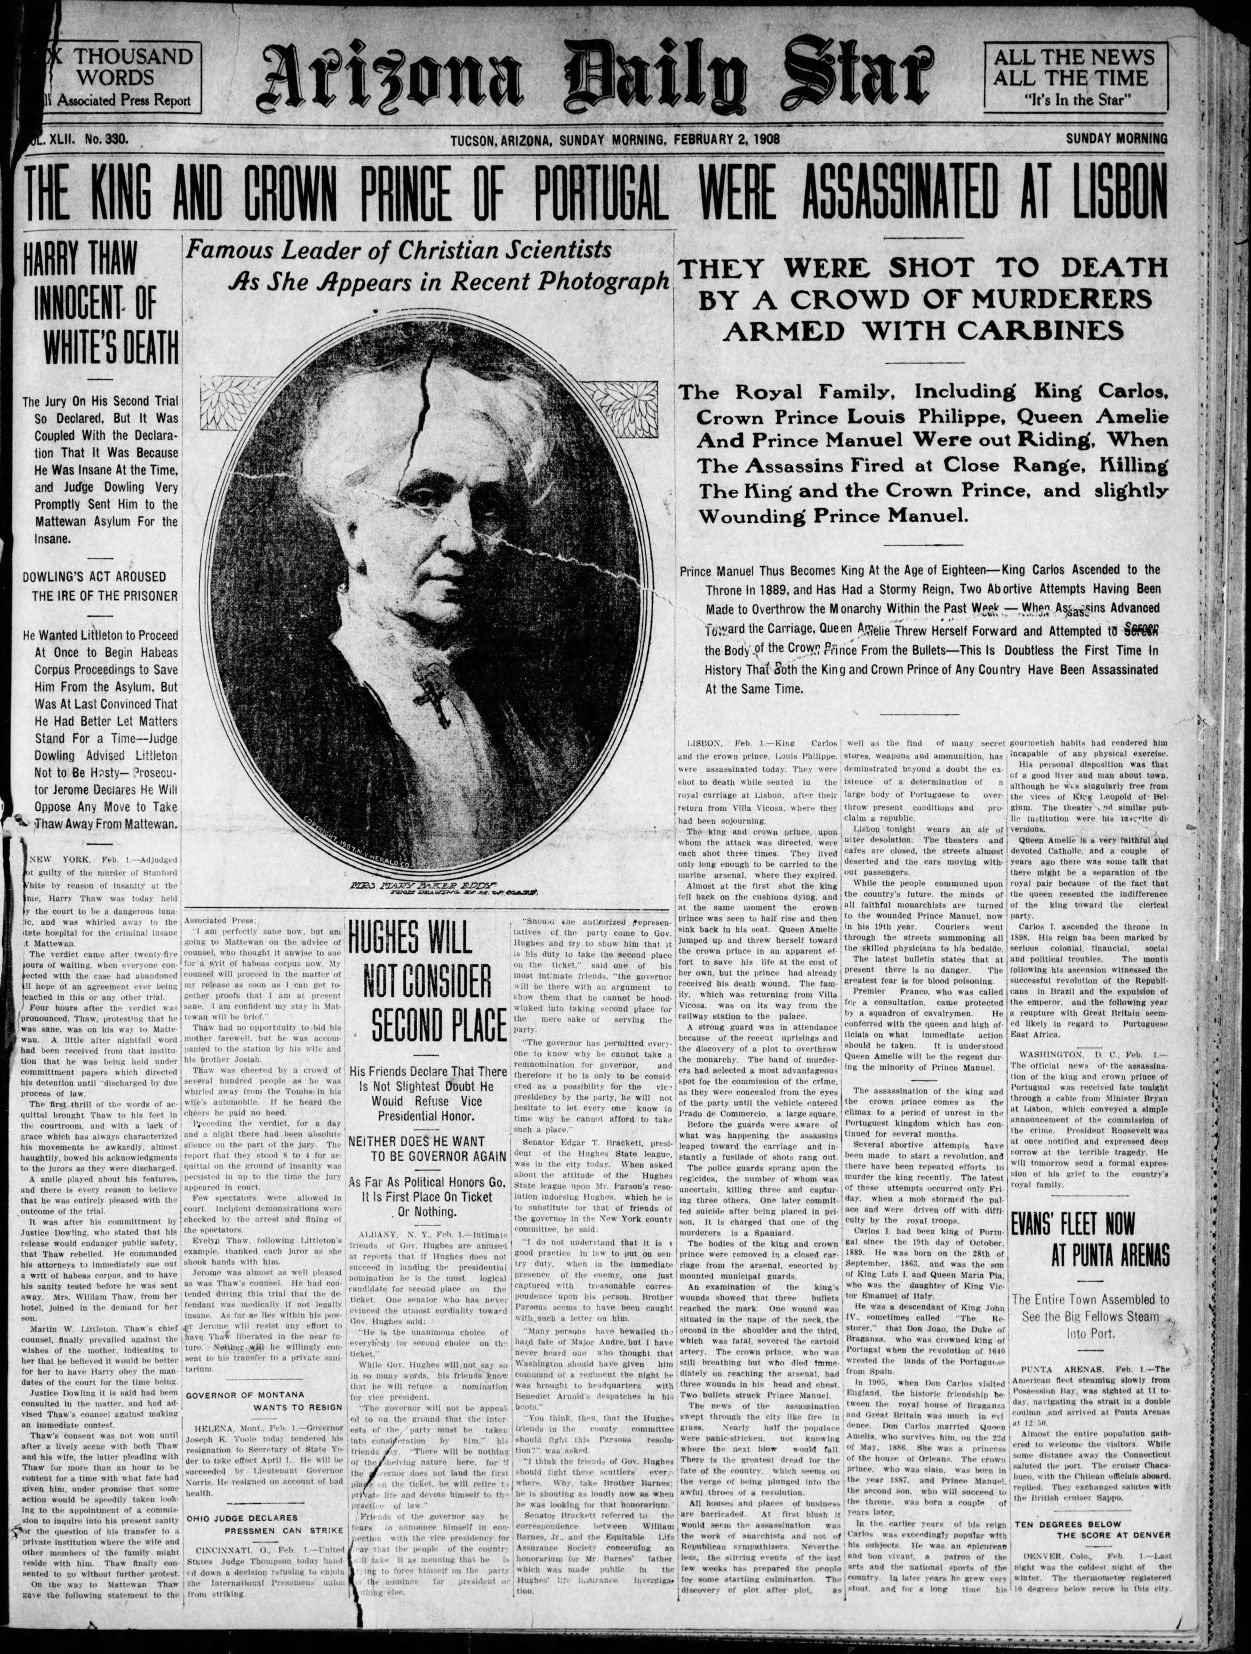 historical feb arizona daily star front pages tales from the arizona daily star front page feb 2 1908